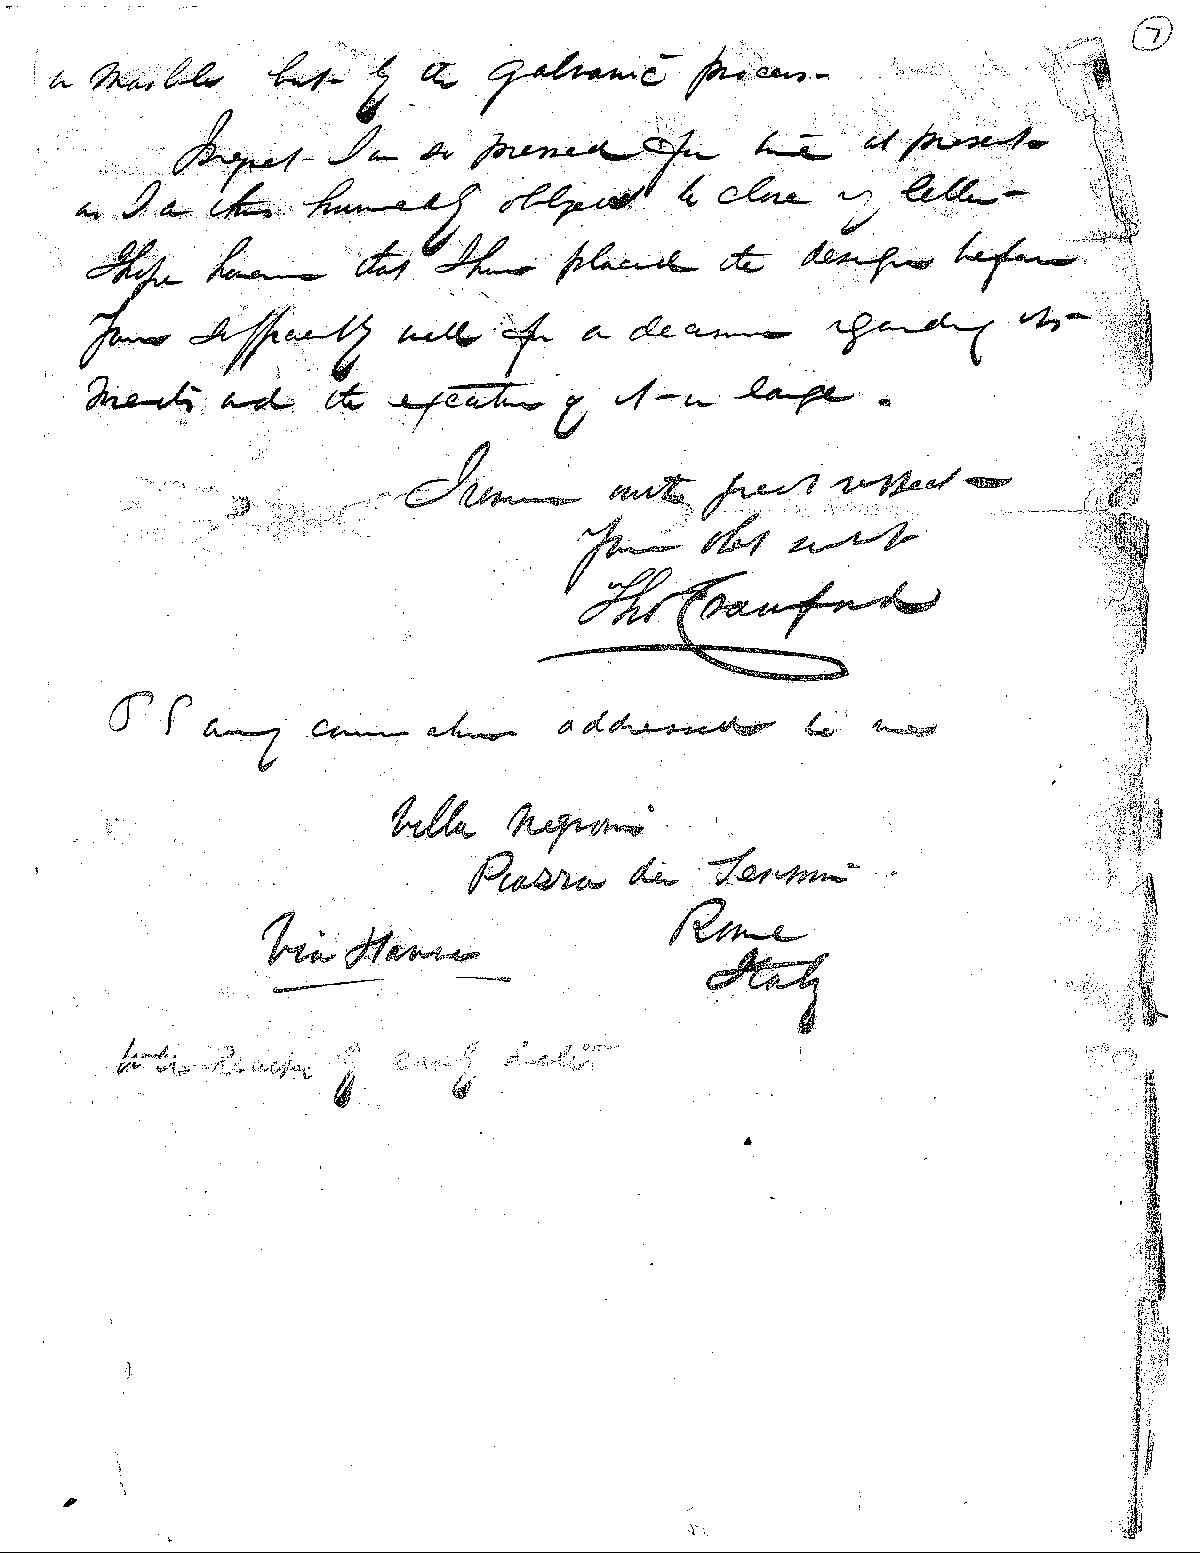 Final page of the letter Thomas Crawford wrote to Captain Montgomery Meigs about the pediment.